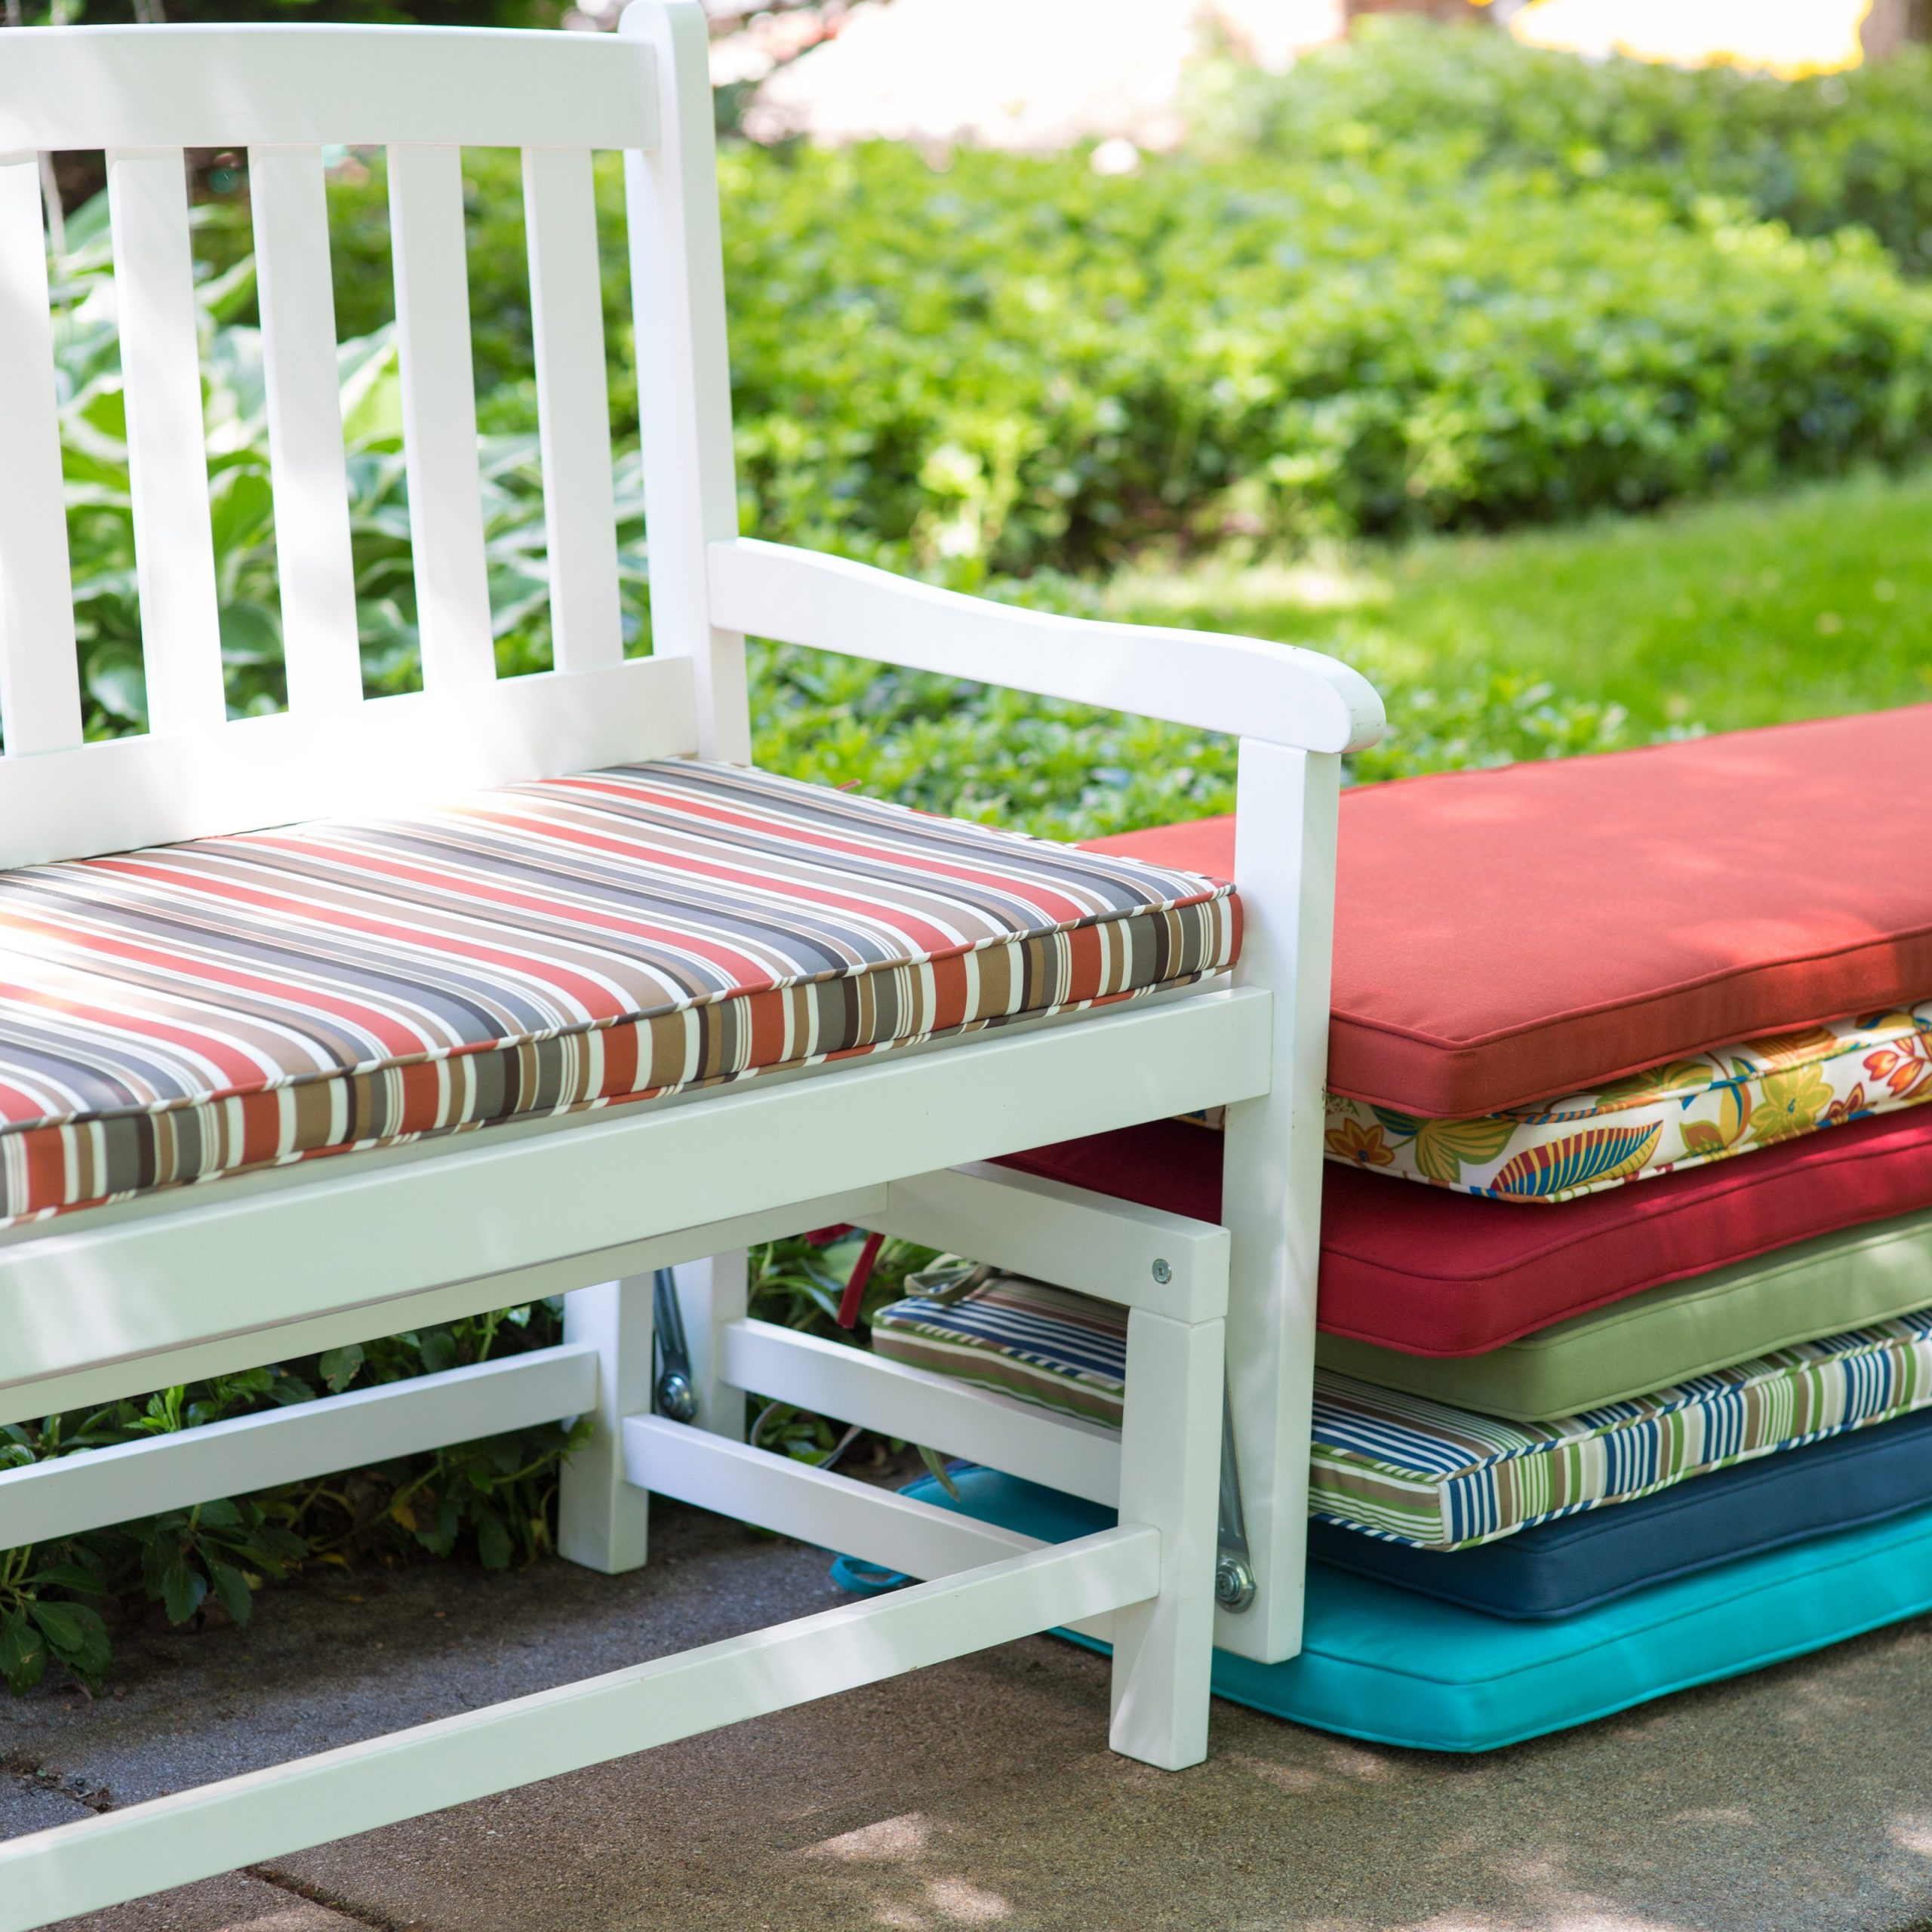 2019 Classic Glider Benches For Furniture (View 28 of 30)